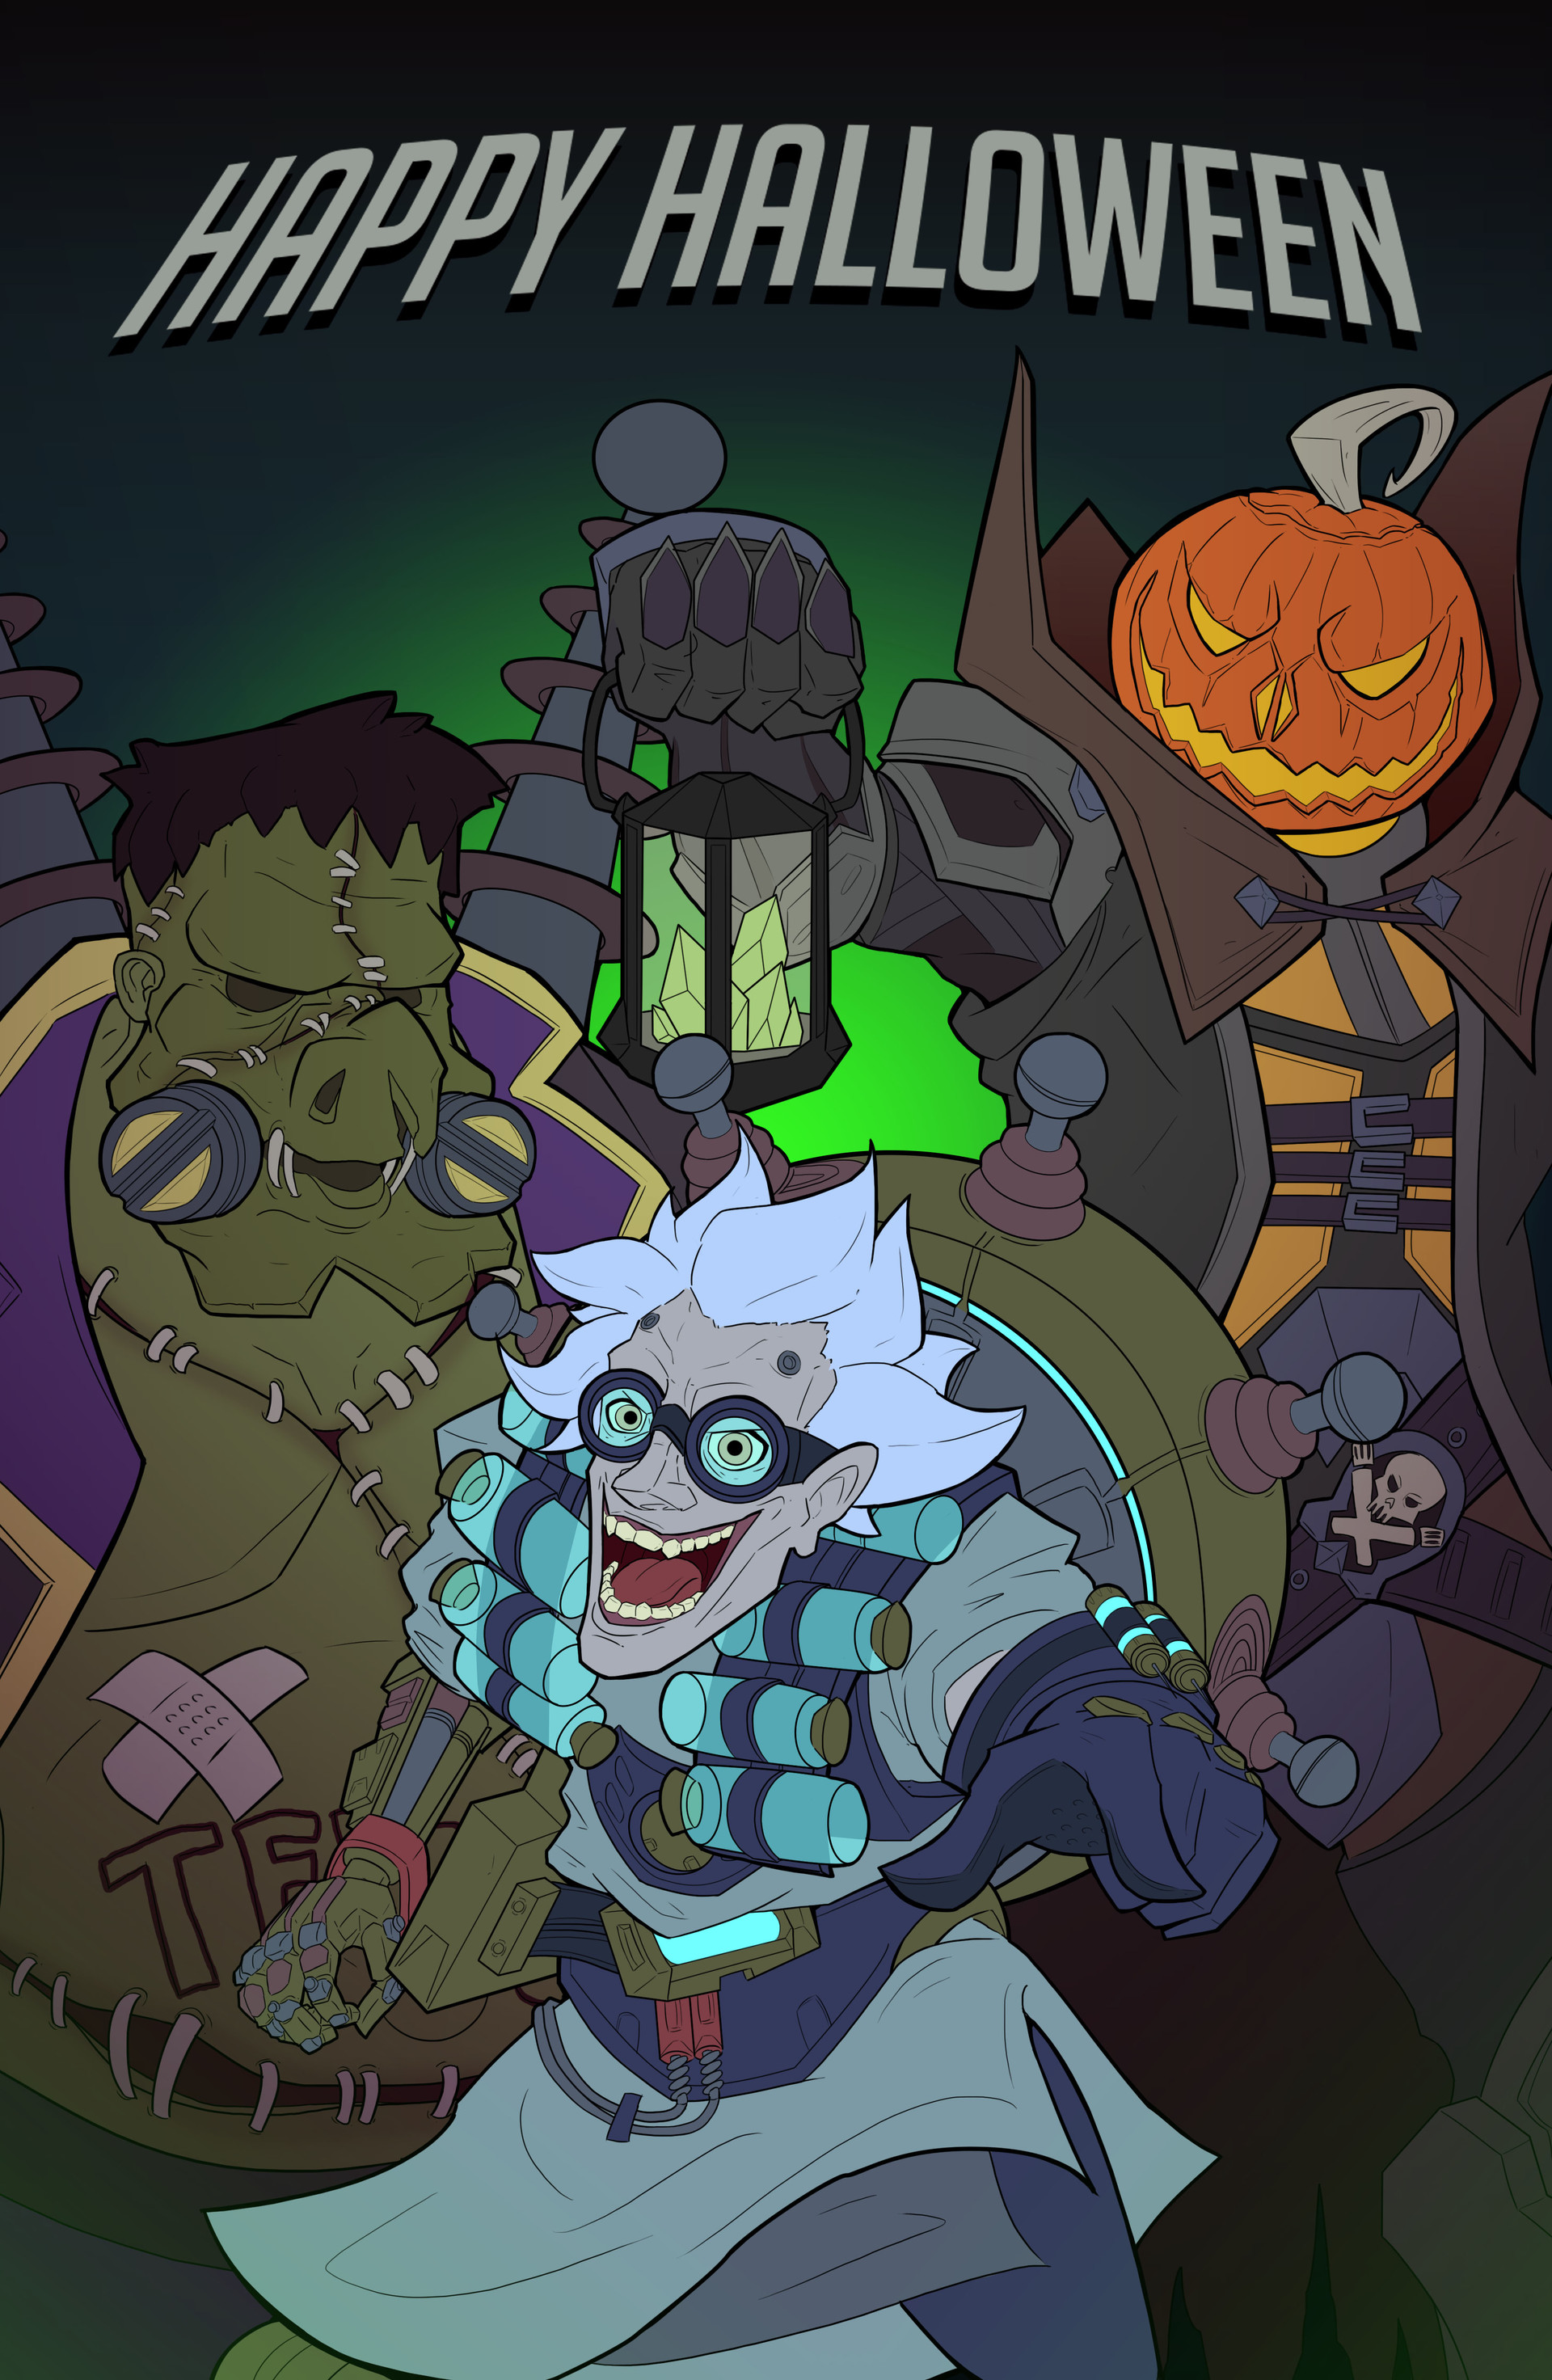 ArtStation - Overwatch Halloween, William Puekker